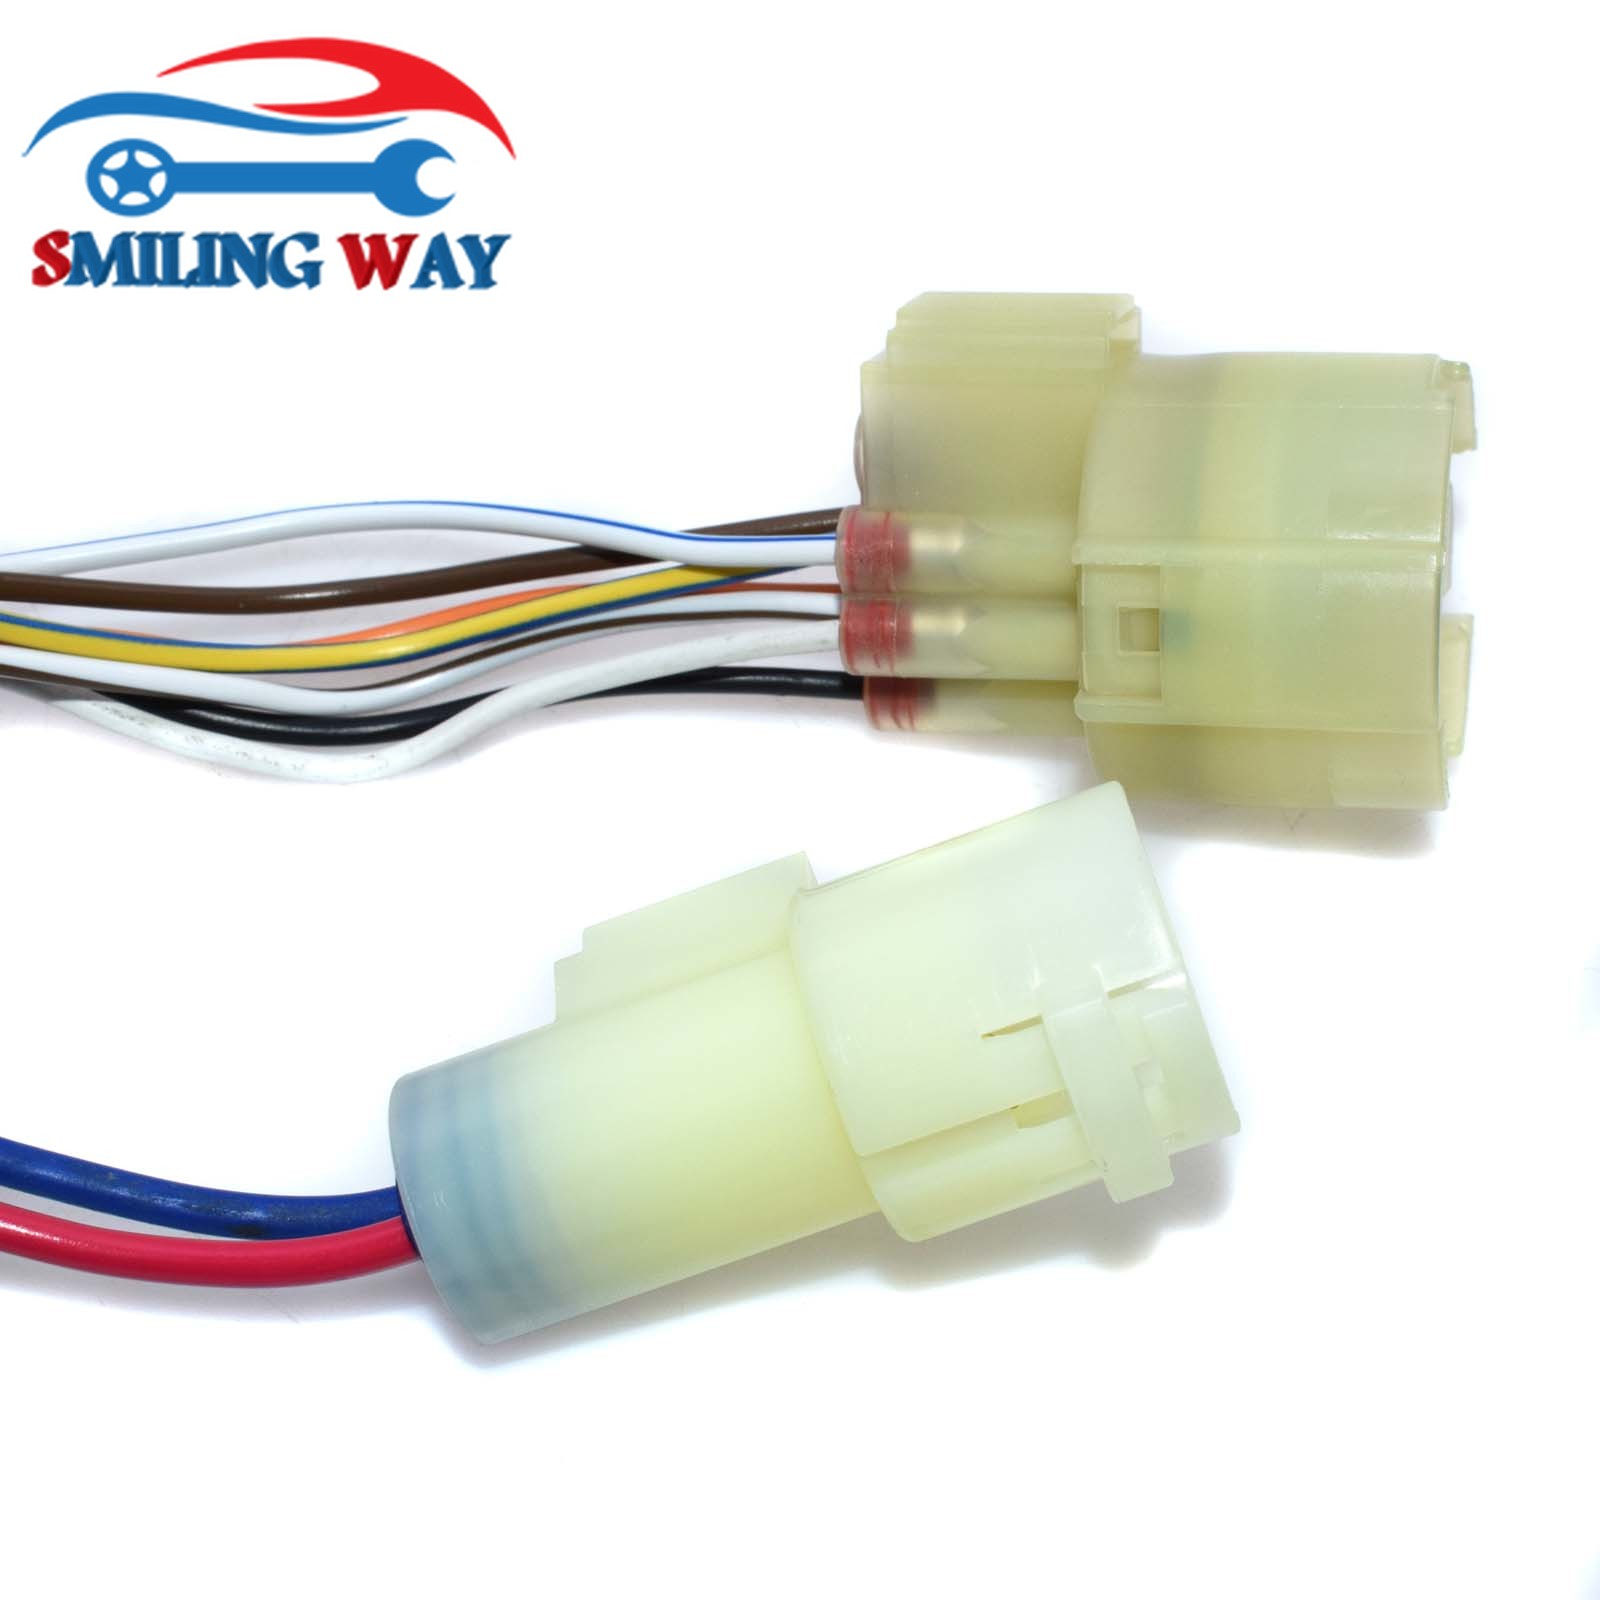 medium resolution of obd0 to obd1 ecu distributor adaptor connector wire harness cable for honda crx civic prelude acura integra b17 b16 b18 b20 in distributors parts from